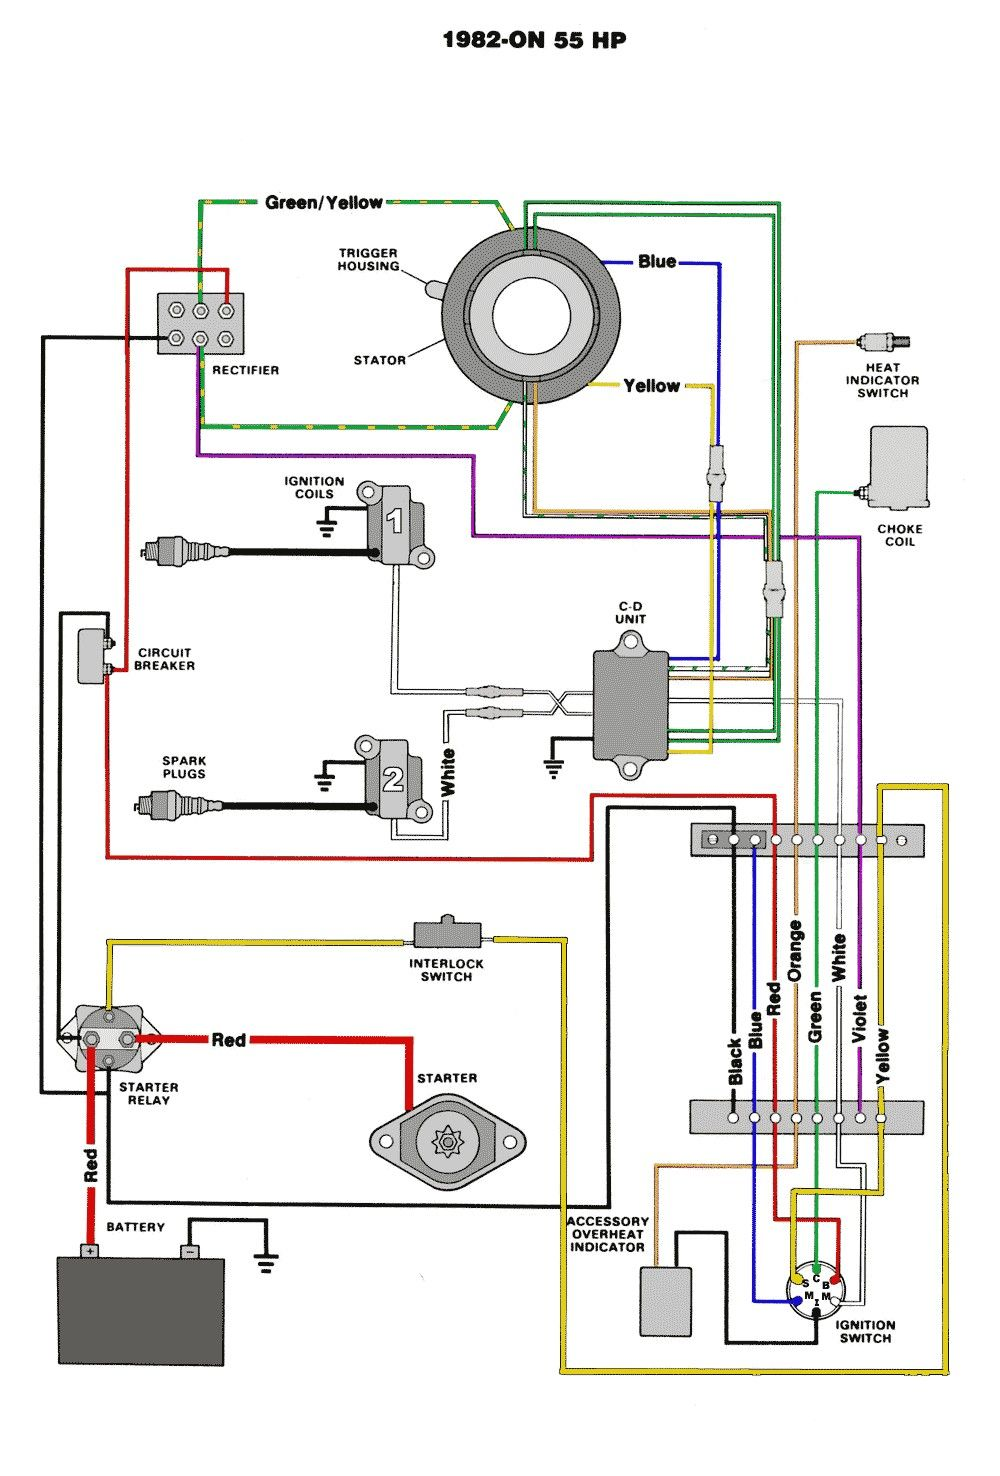 B Mariner Outboard Motor Wiring Diagram In 2020 Diagram Wire Outboard